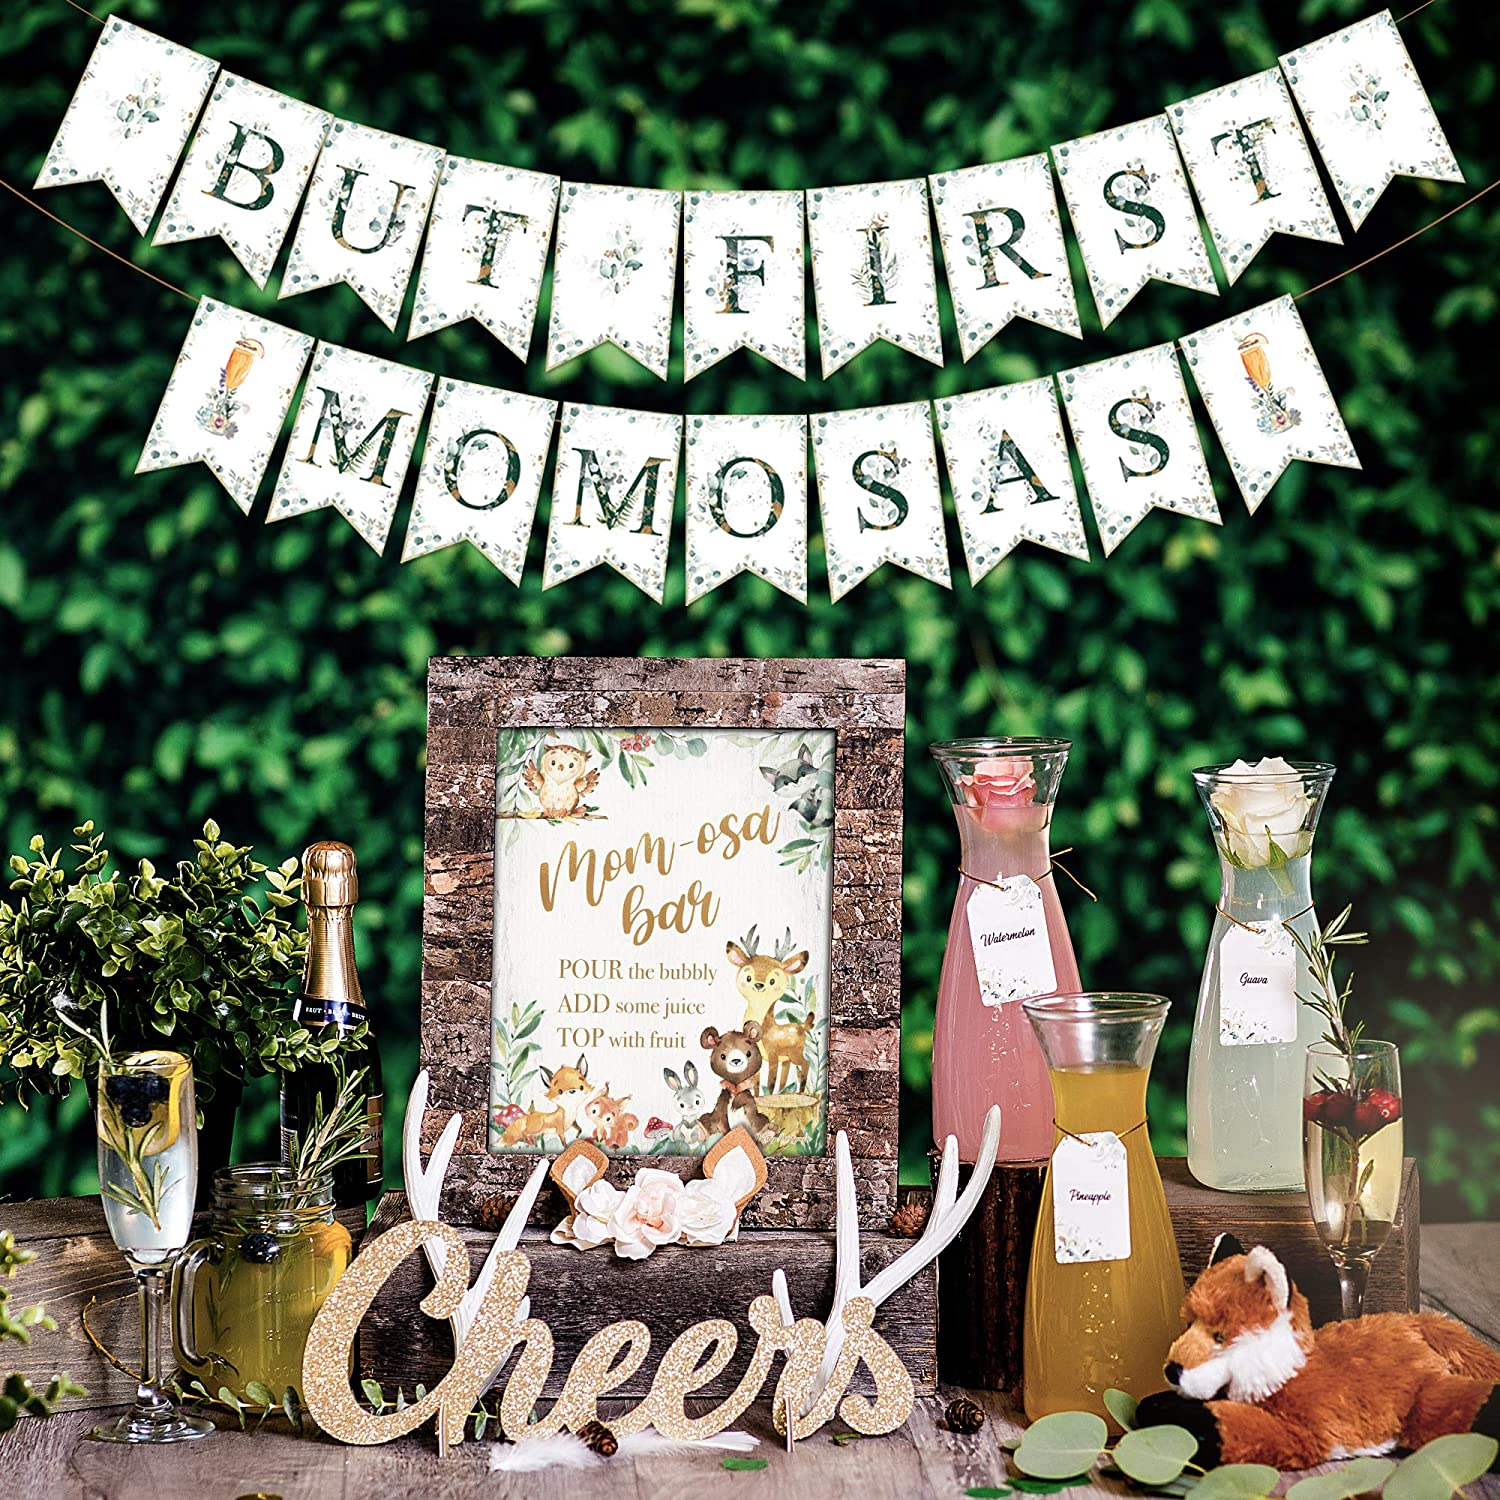 Mimosa Bar Kit | Drinks Table Decor! Woodland Baby Shower Decorations Boy Girl or Gender Neutral Greenery with Forest Theme Animals & Creatures: Fox Owl Doe Buck Oh Deer Party Sign Banner (Woodlands)